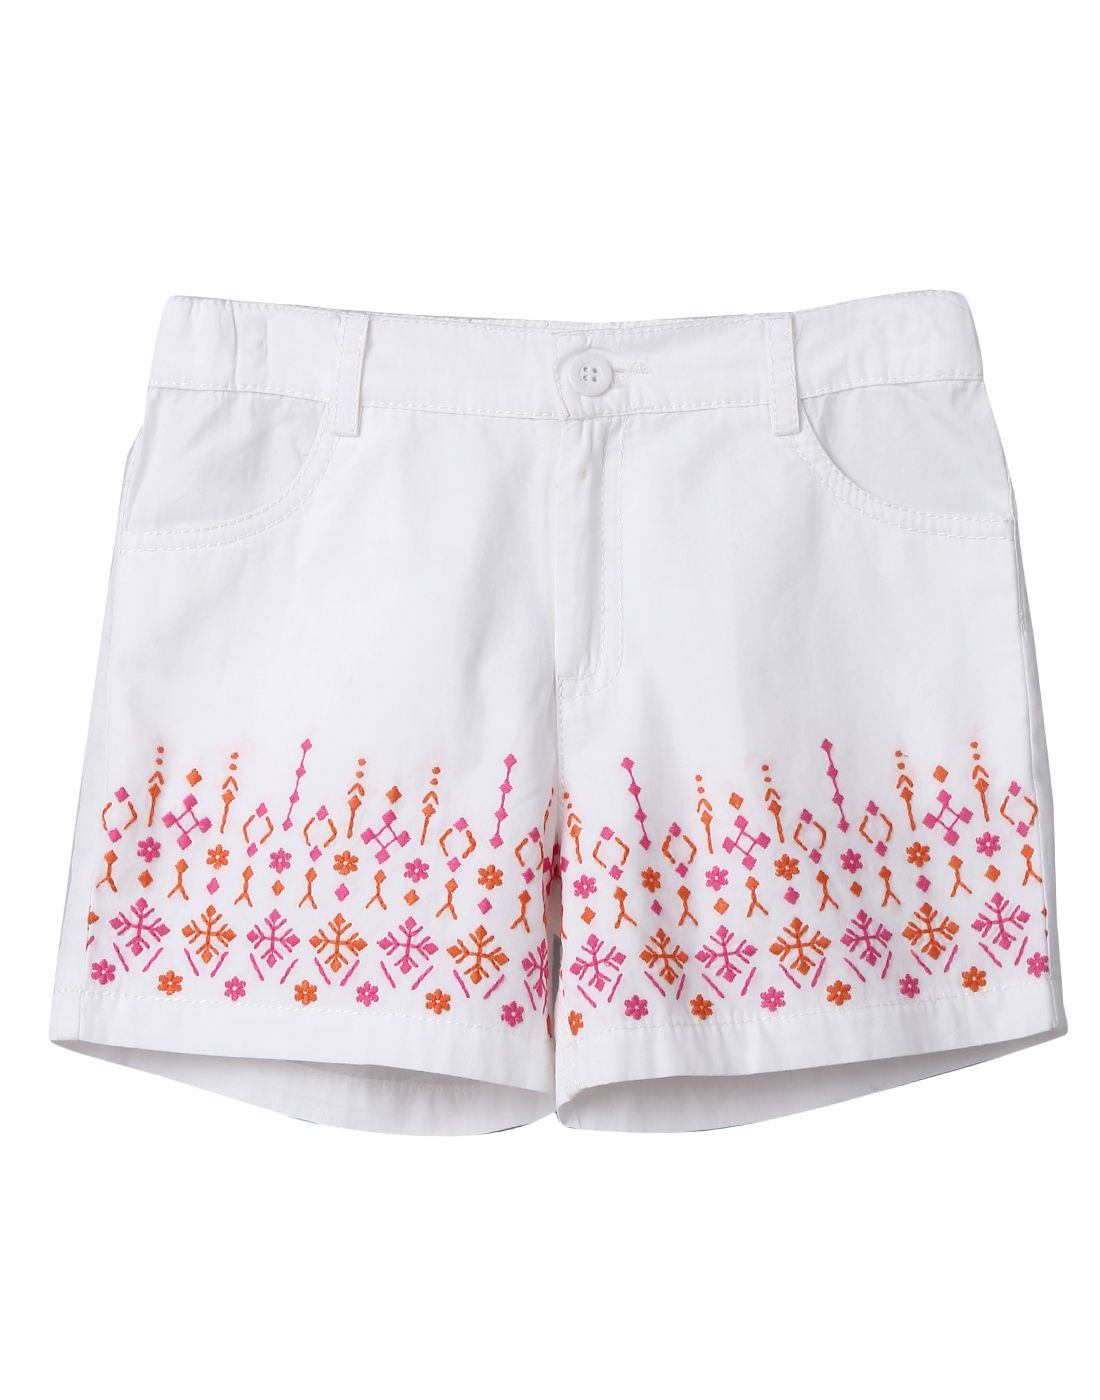 White Embroidery Shorts White 7Y